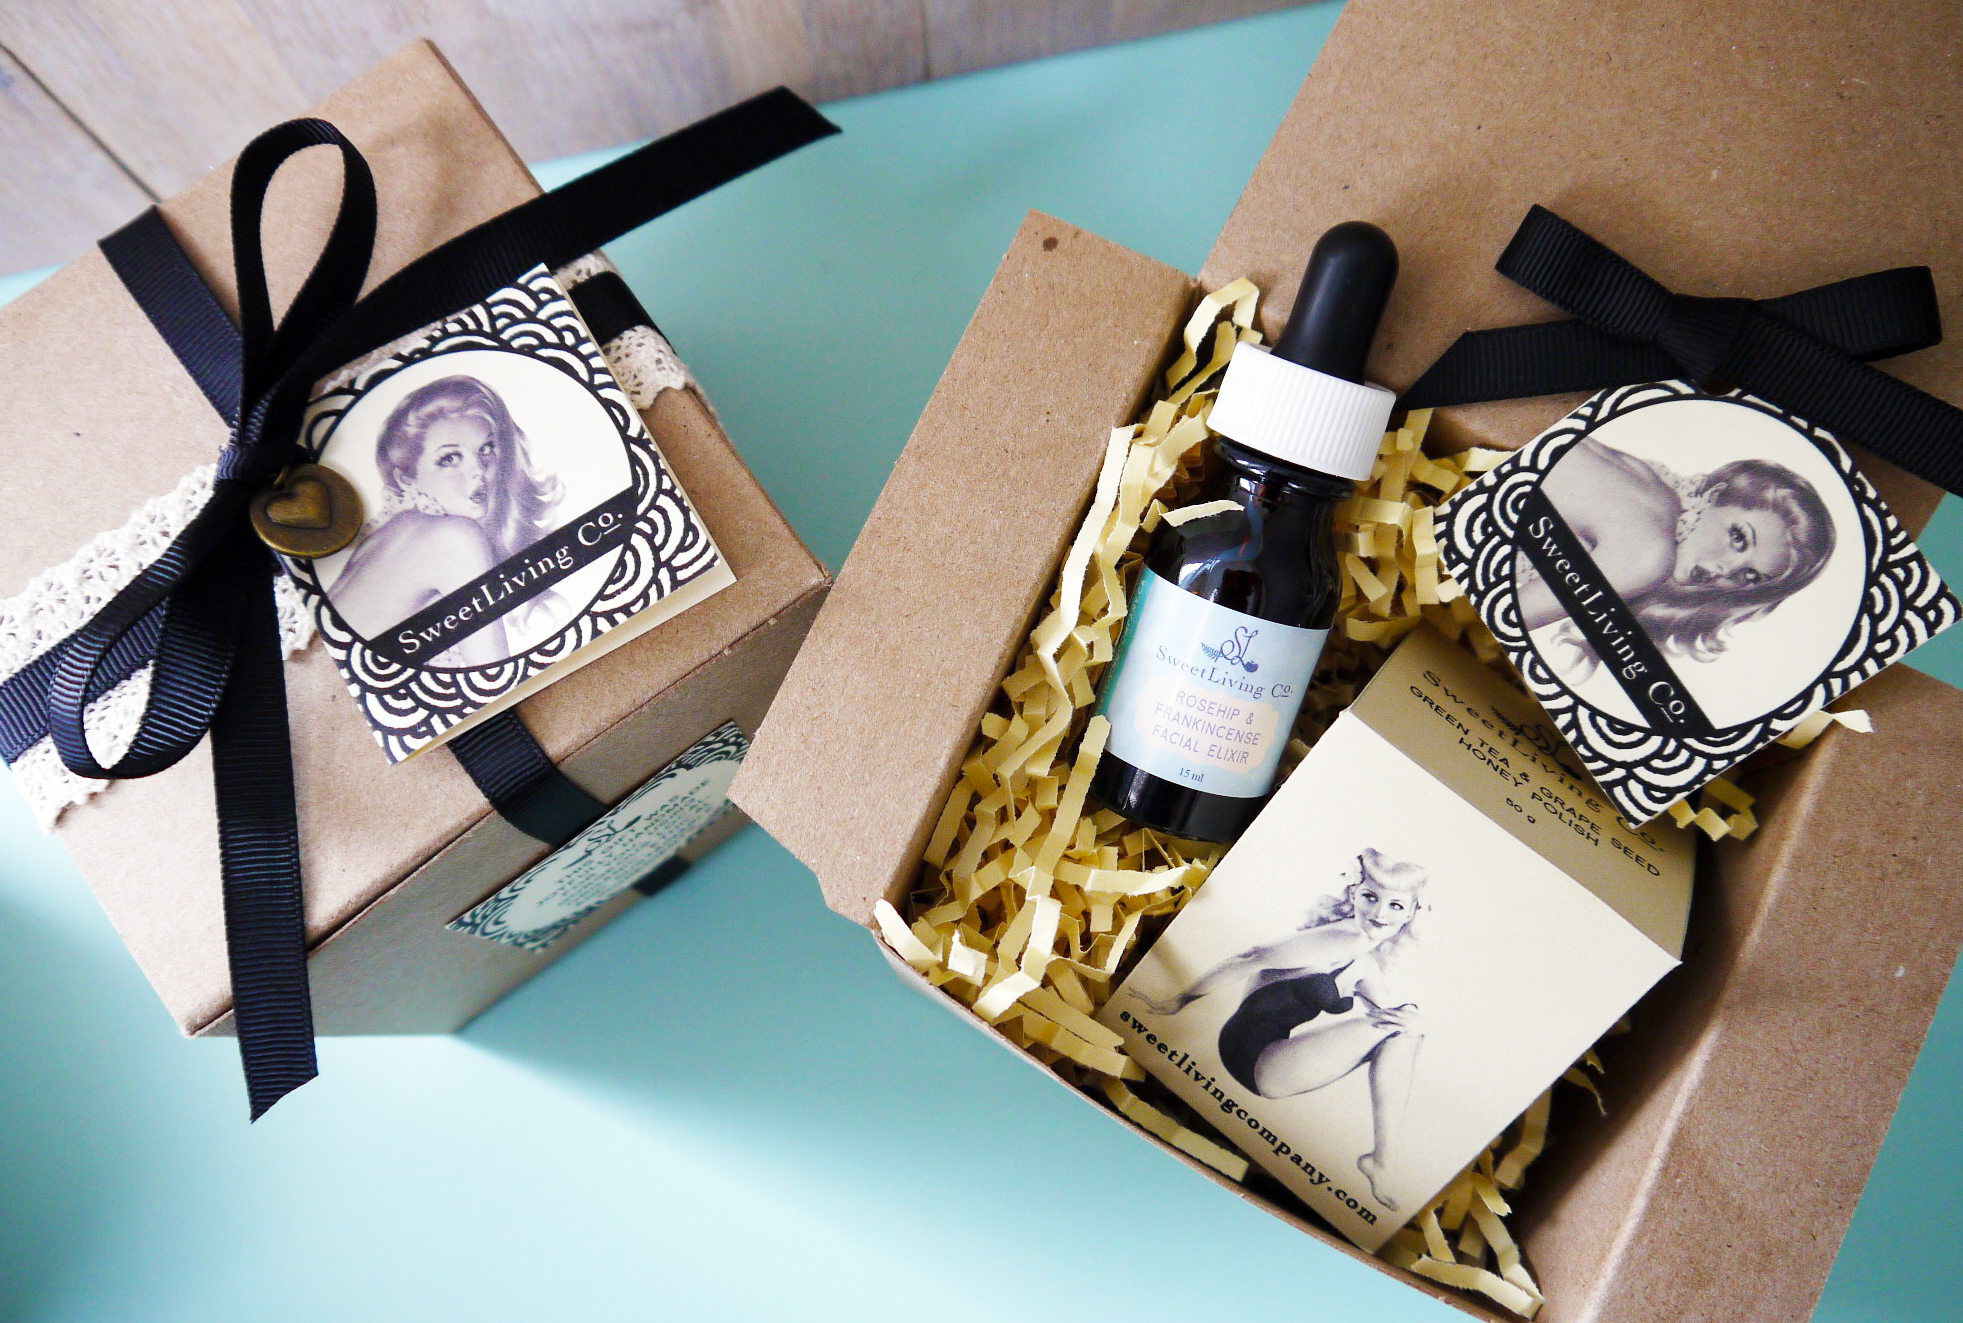 Brighten-up Beauty Box - Handmade in Calgary by Sweet Living Co. Organic, Natural Skincare.